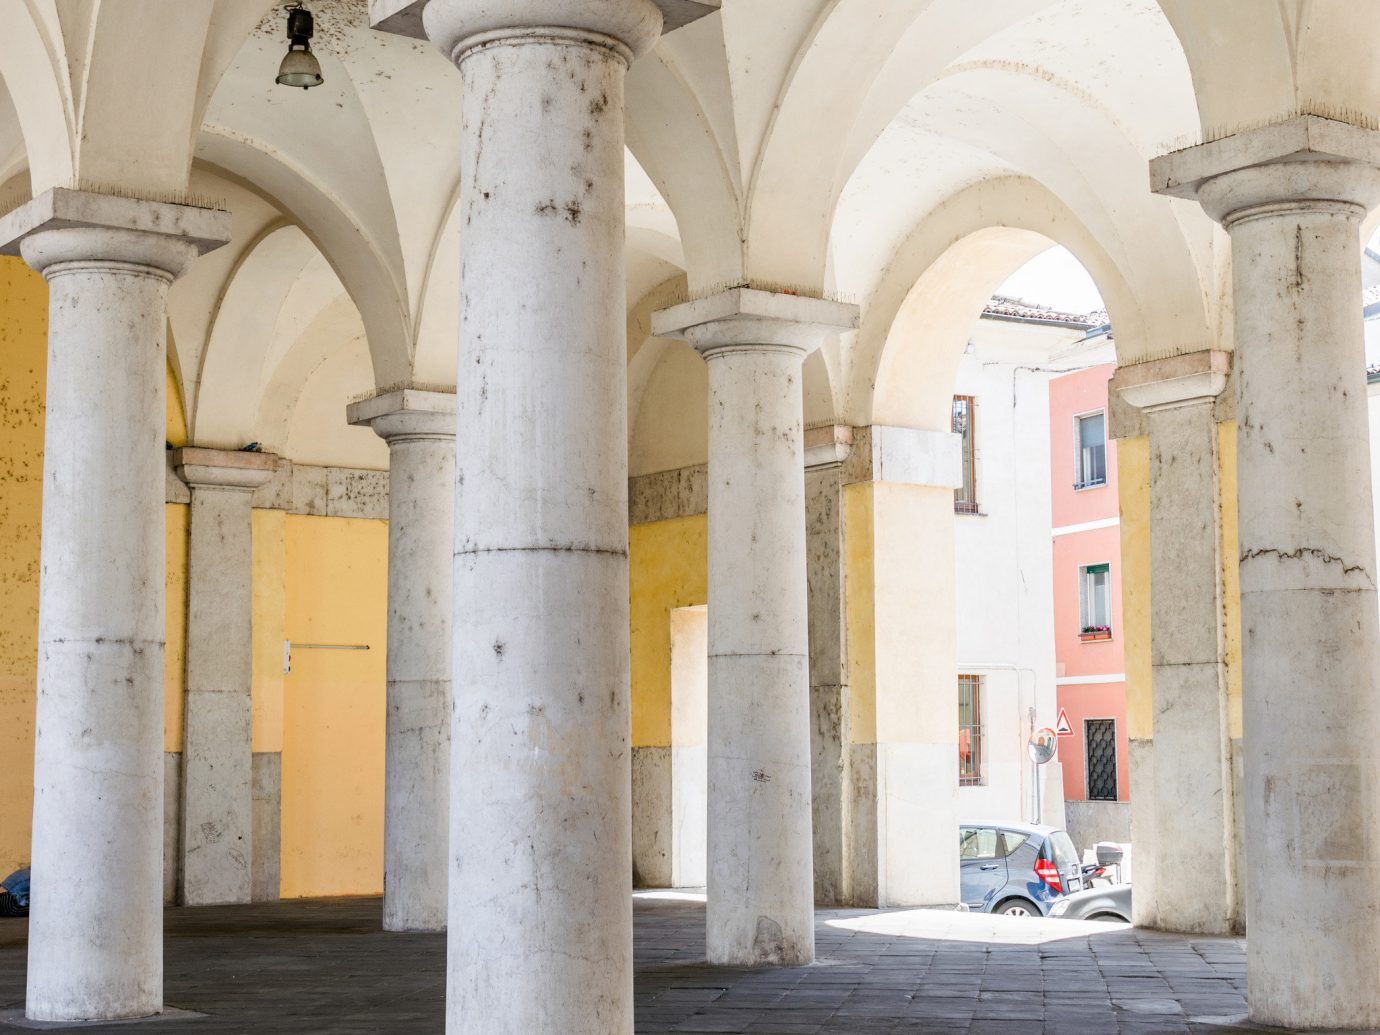 Arts + Culture Italy Milan Trip Ideas arch column arcade structure historic site building abbey history ancient history place of worship vault crypt medieval architecture daylighting